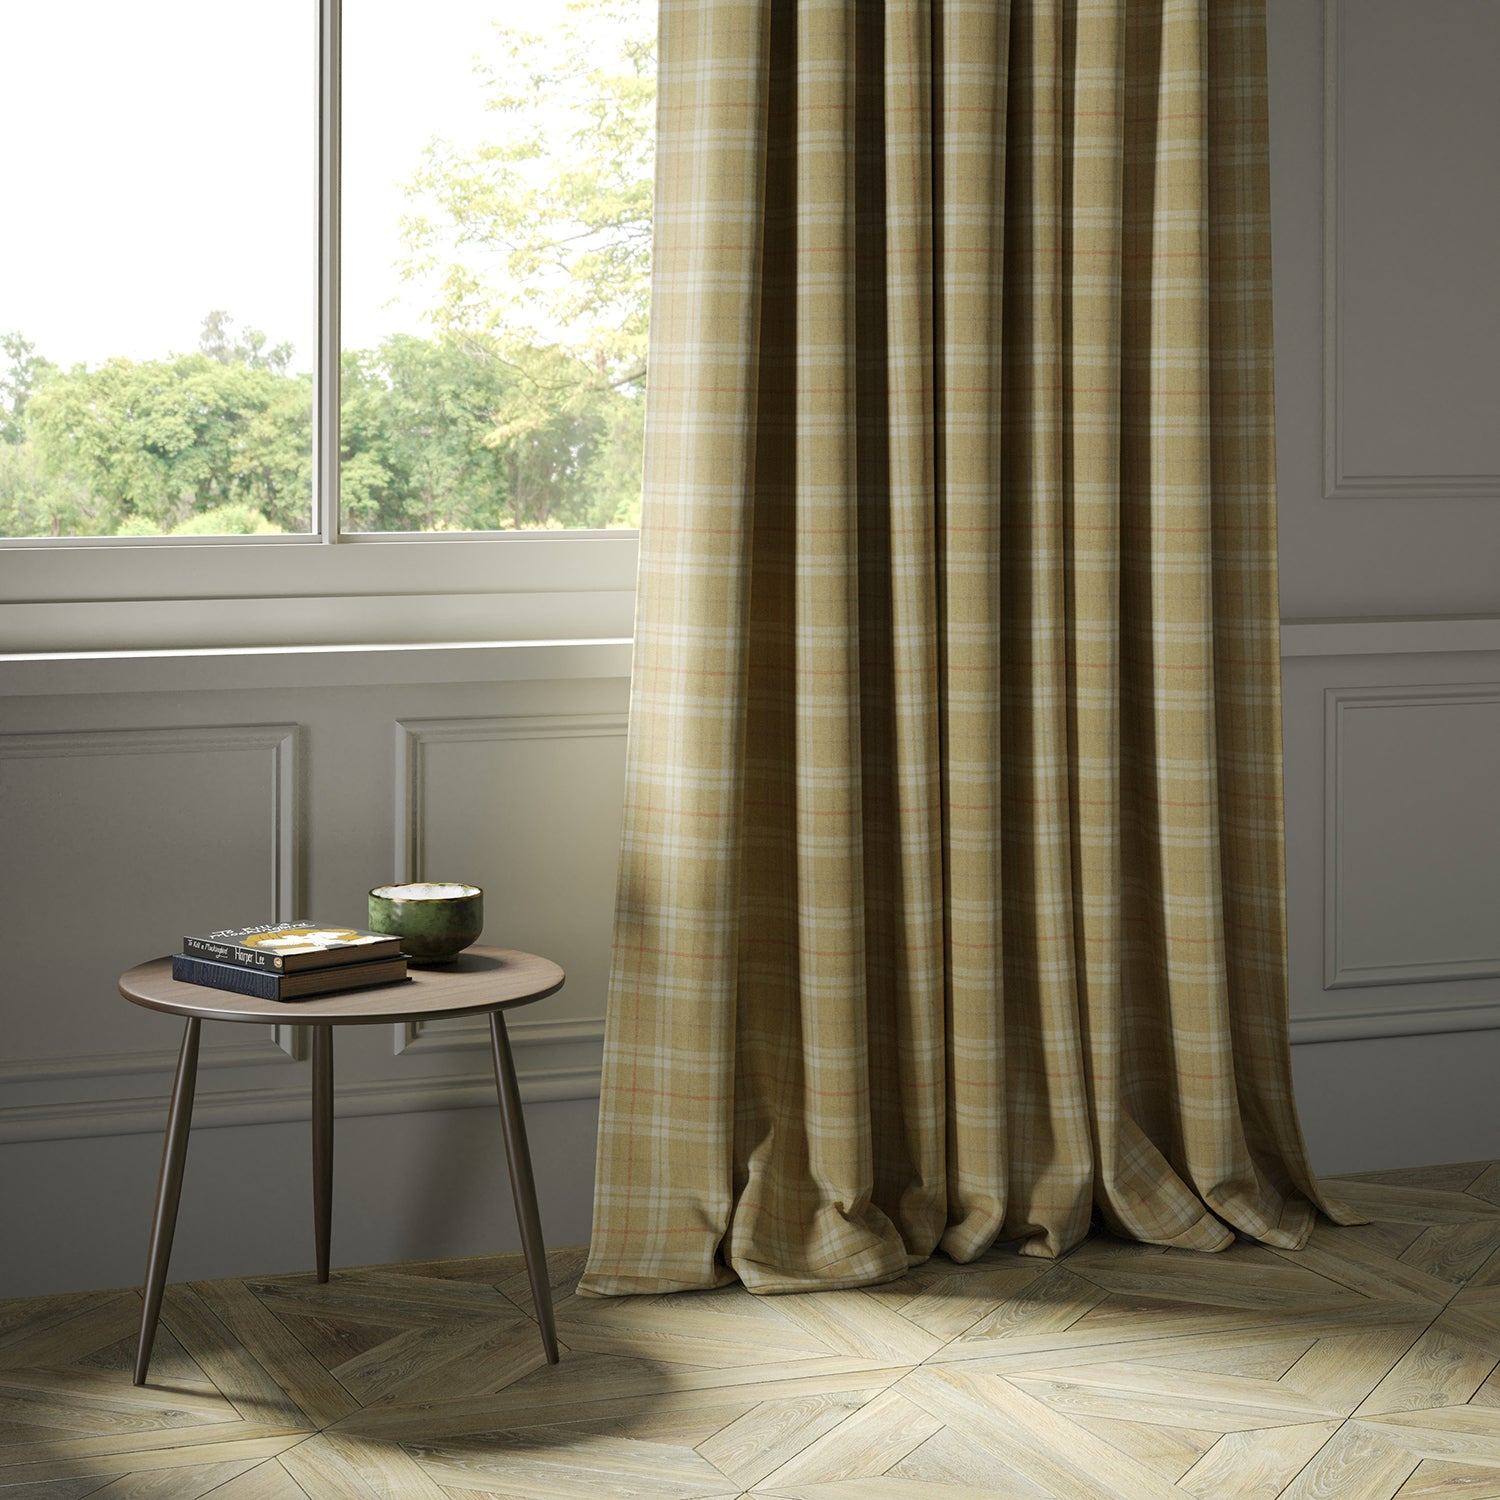 Curtains in a beige Scottish wool plaid check fabric